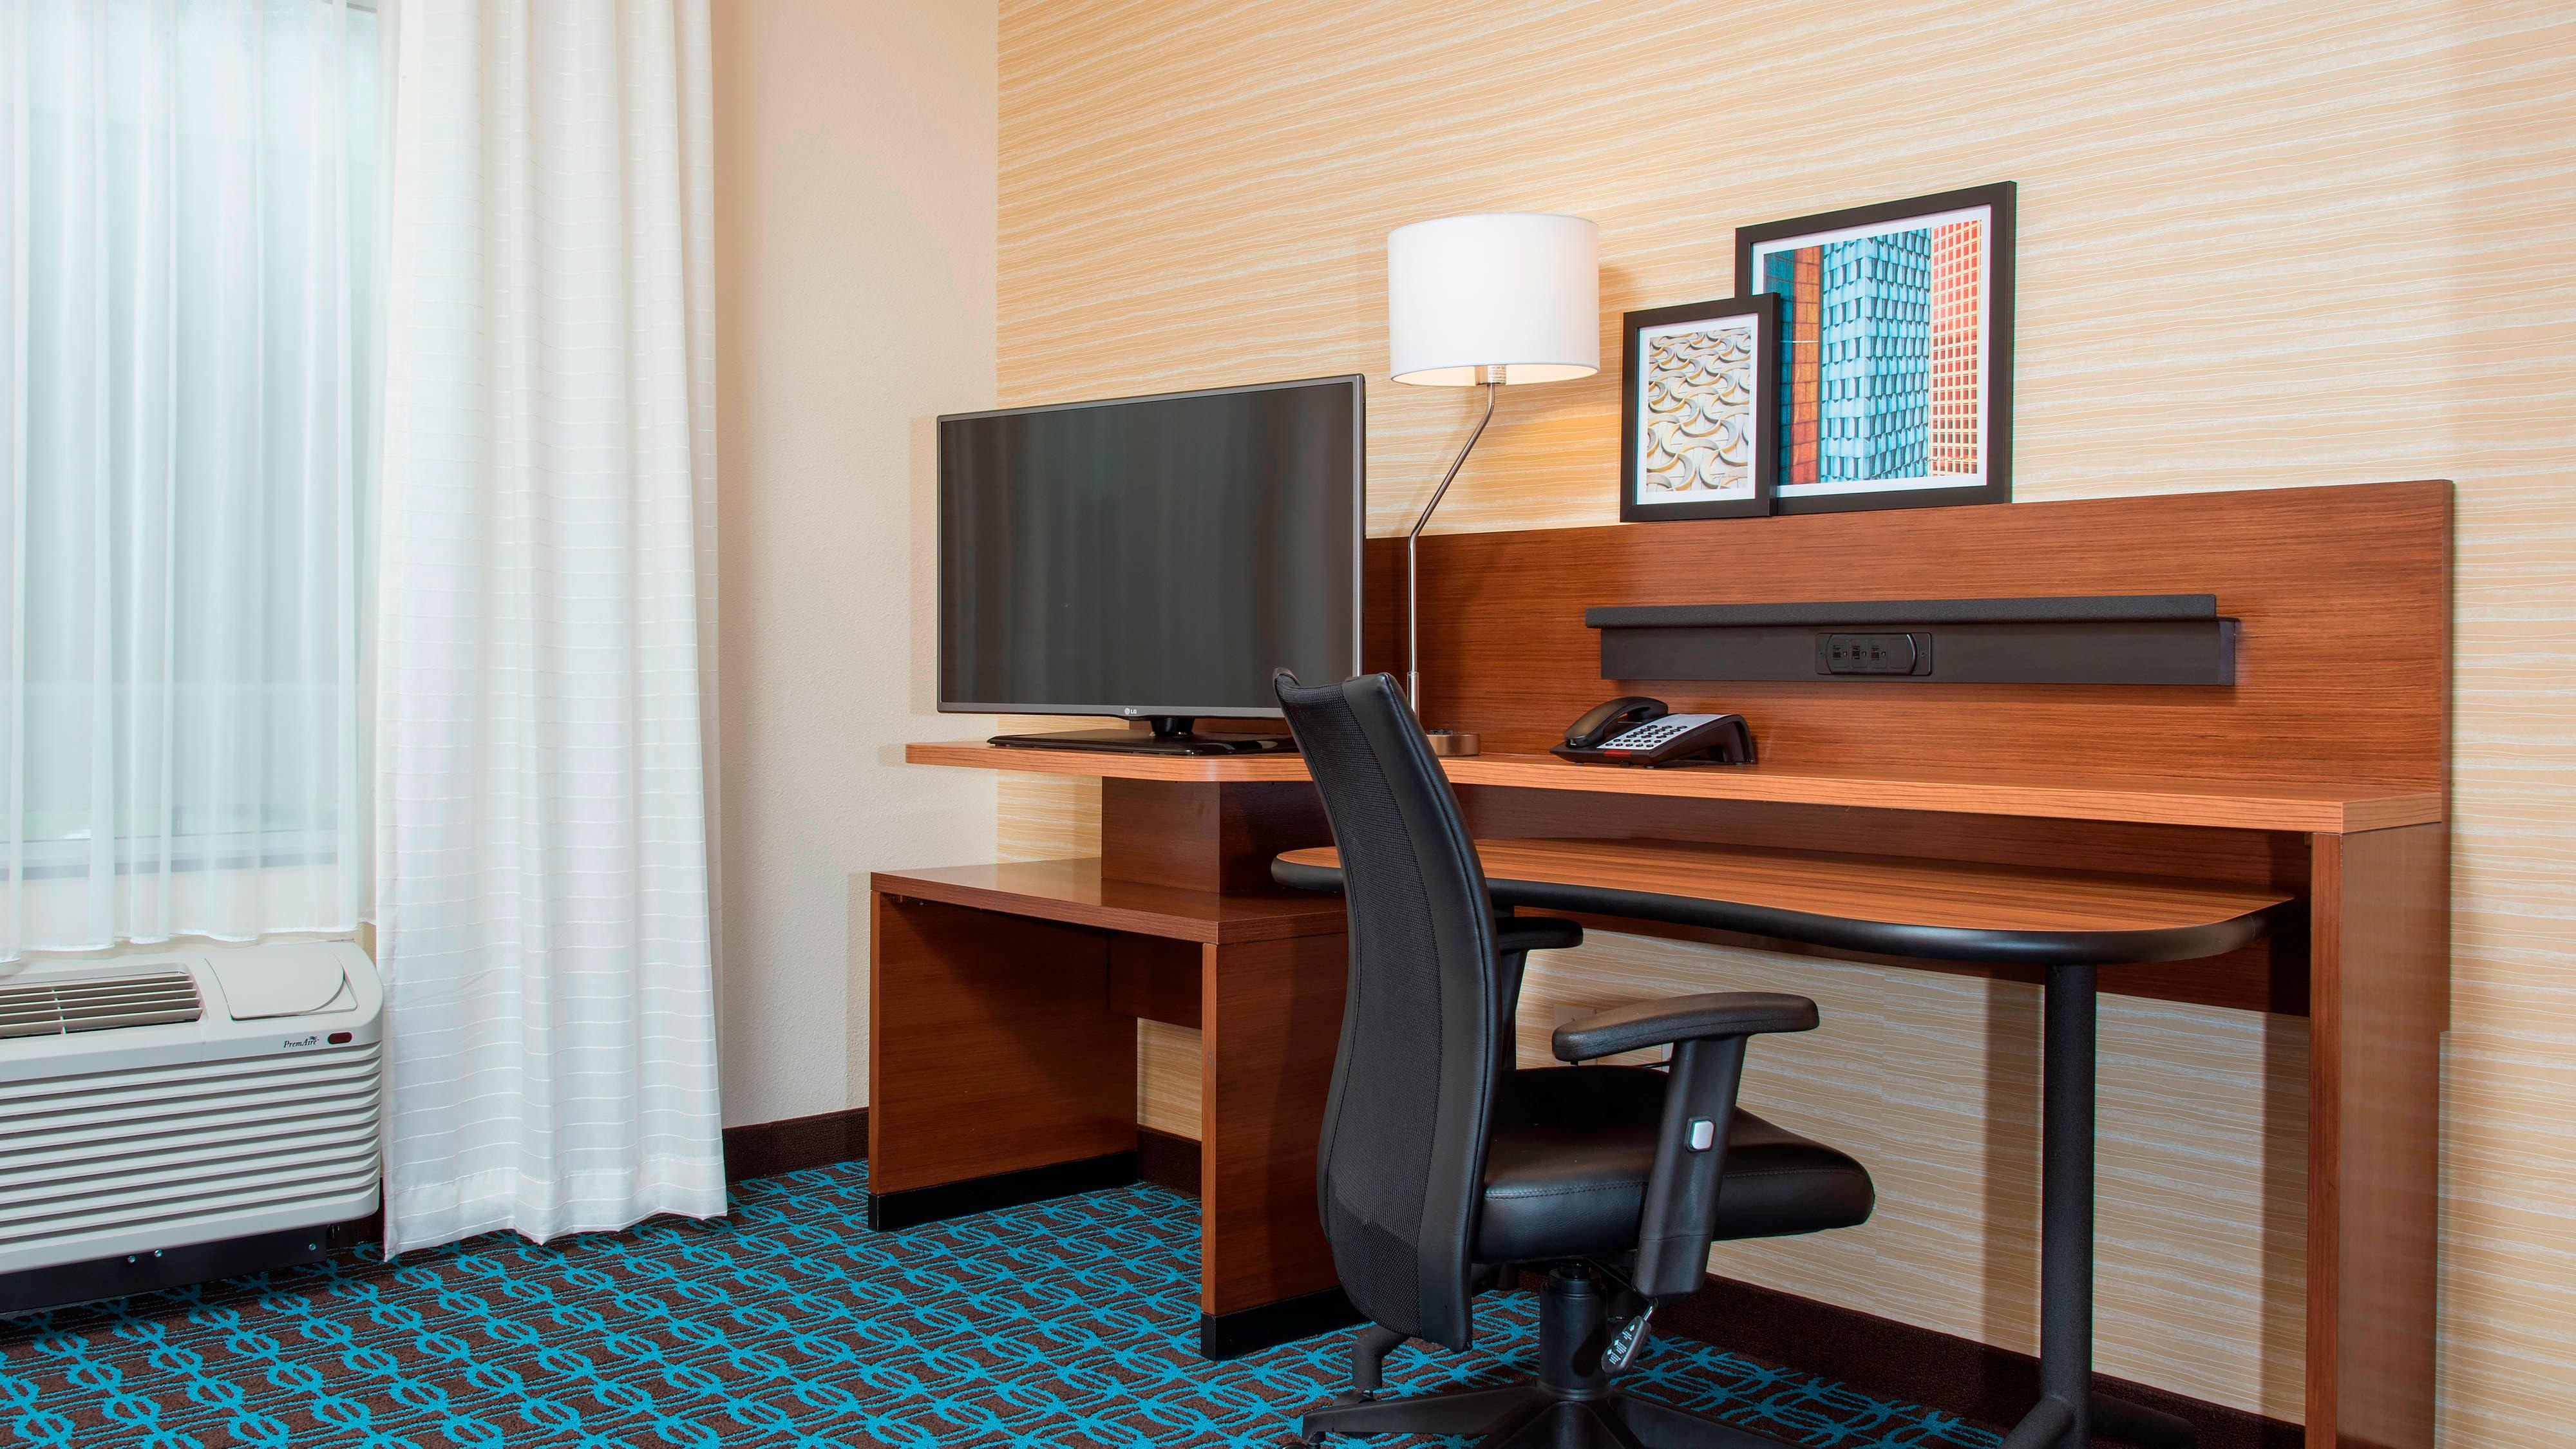 Fairfield Inn & Suites Fredericksburg Work Station